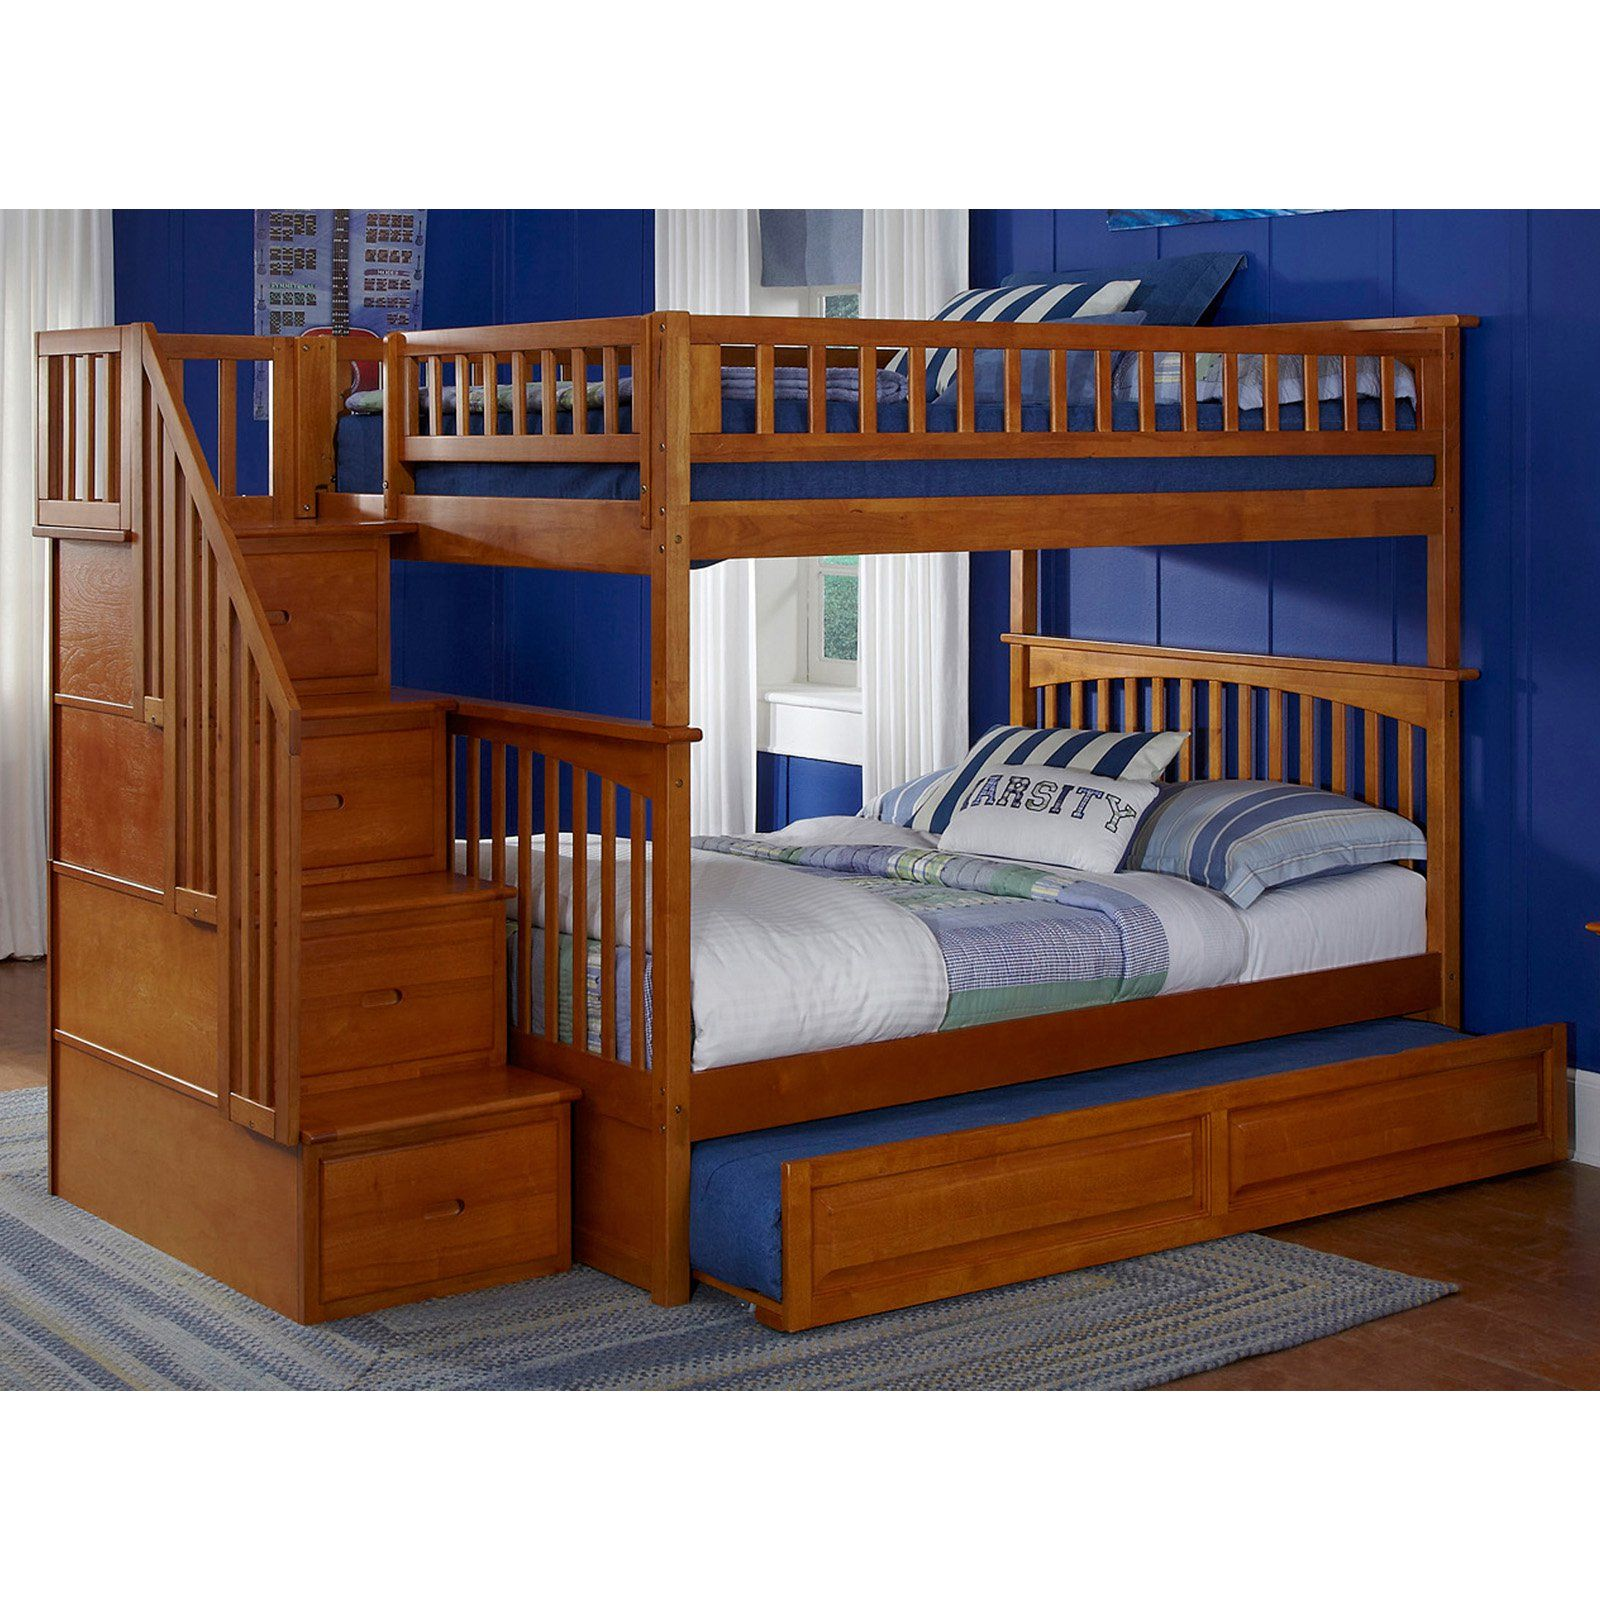 Atlantic Furniture Columbia Staircase Full Over Full Bunk Bed Bunk Beds Girls Bunk Beds Bunk Beds With Stairs